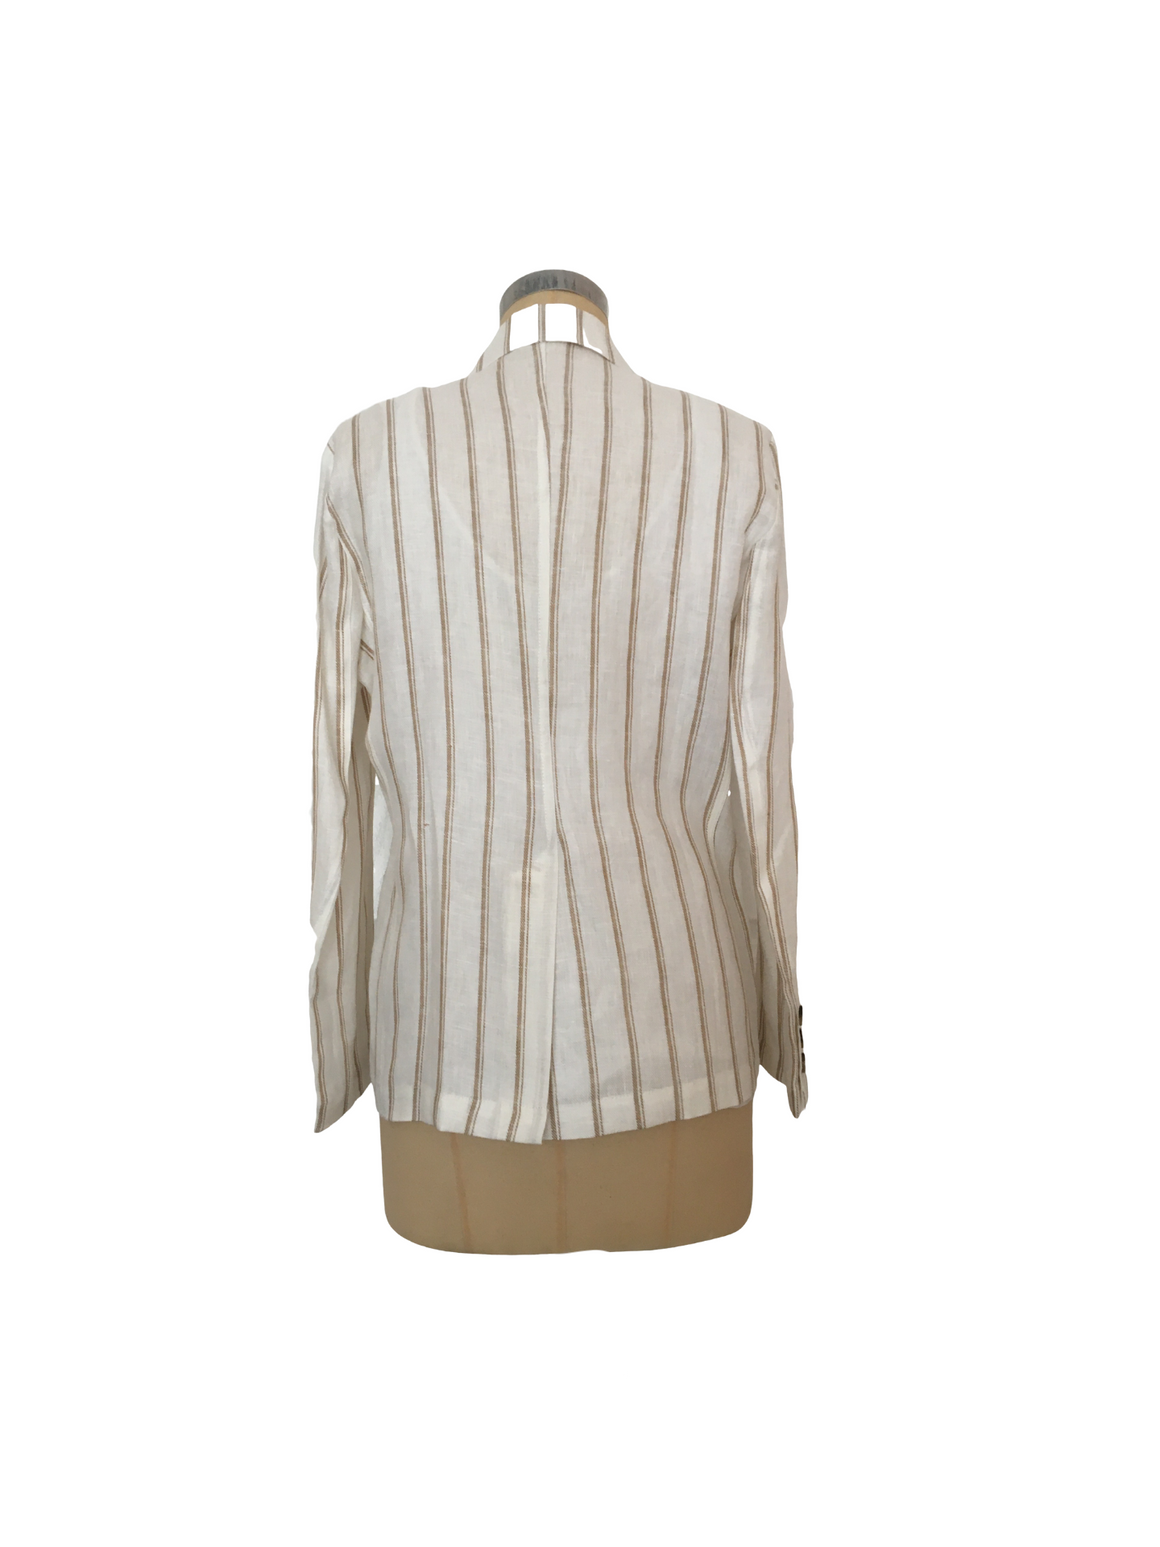 The Striped Linen Jacket